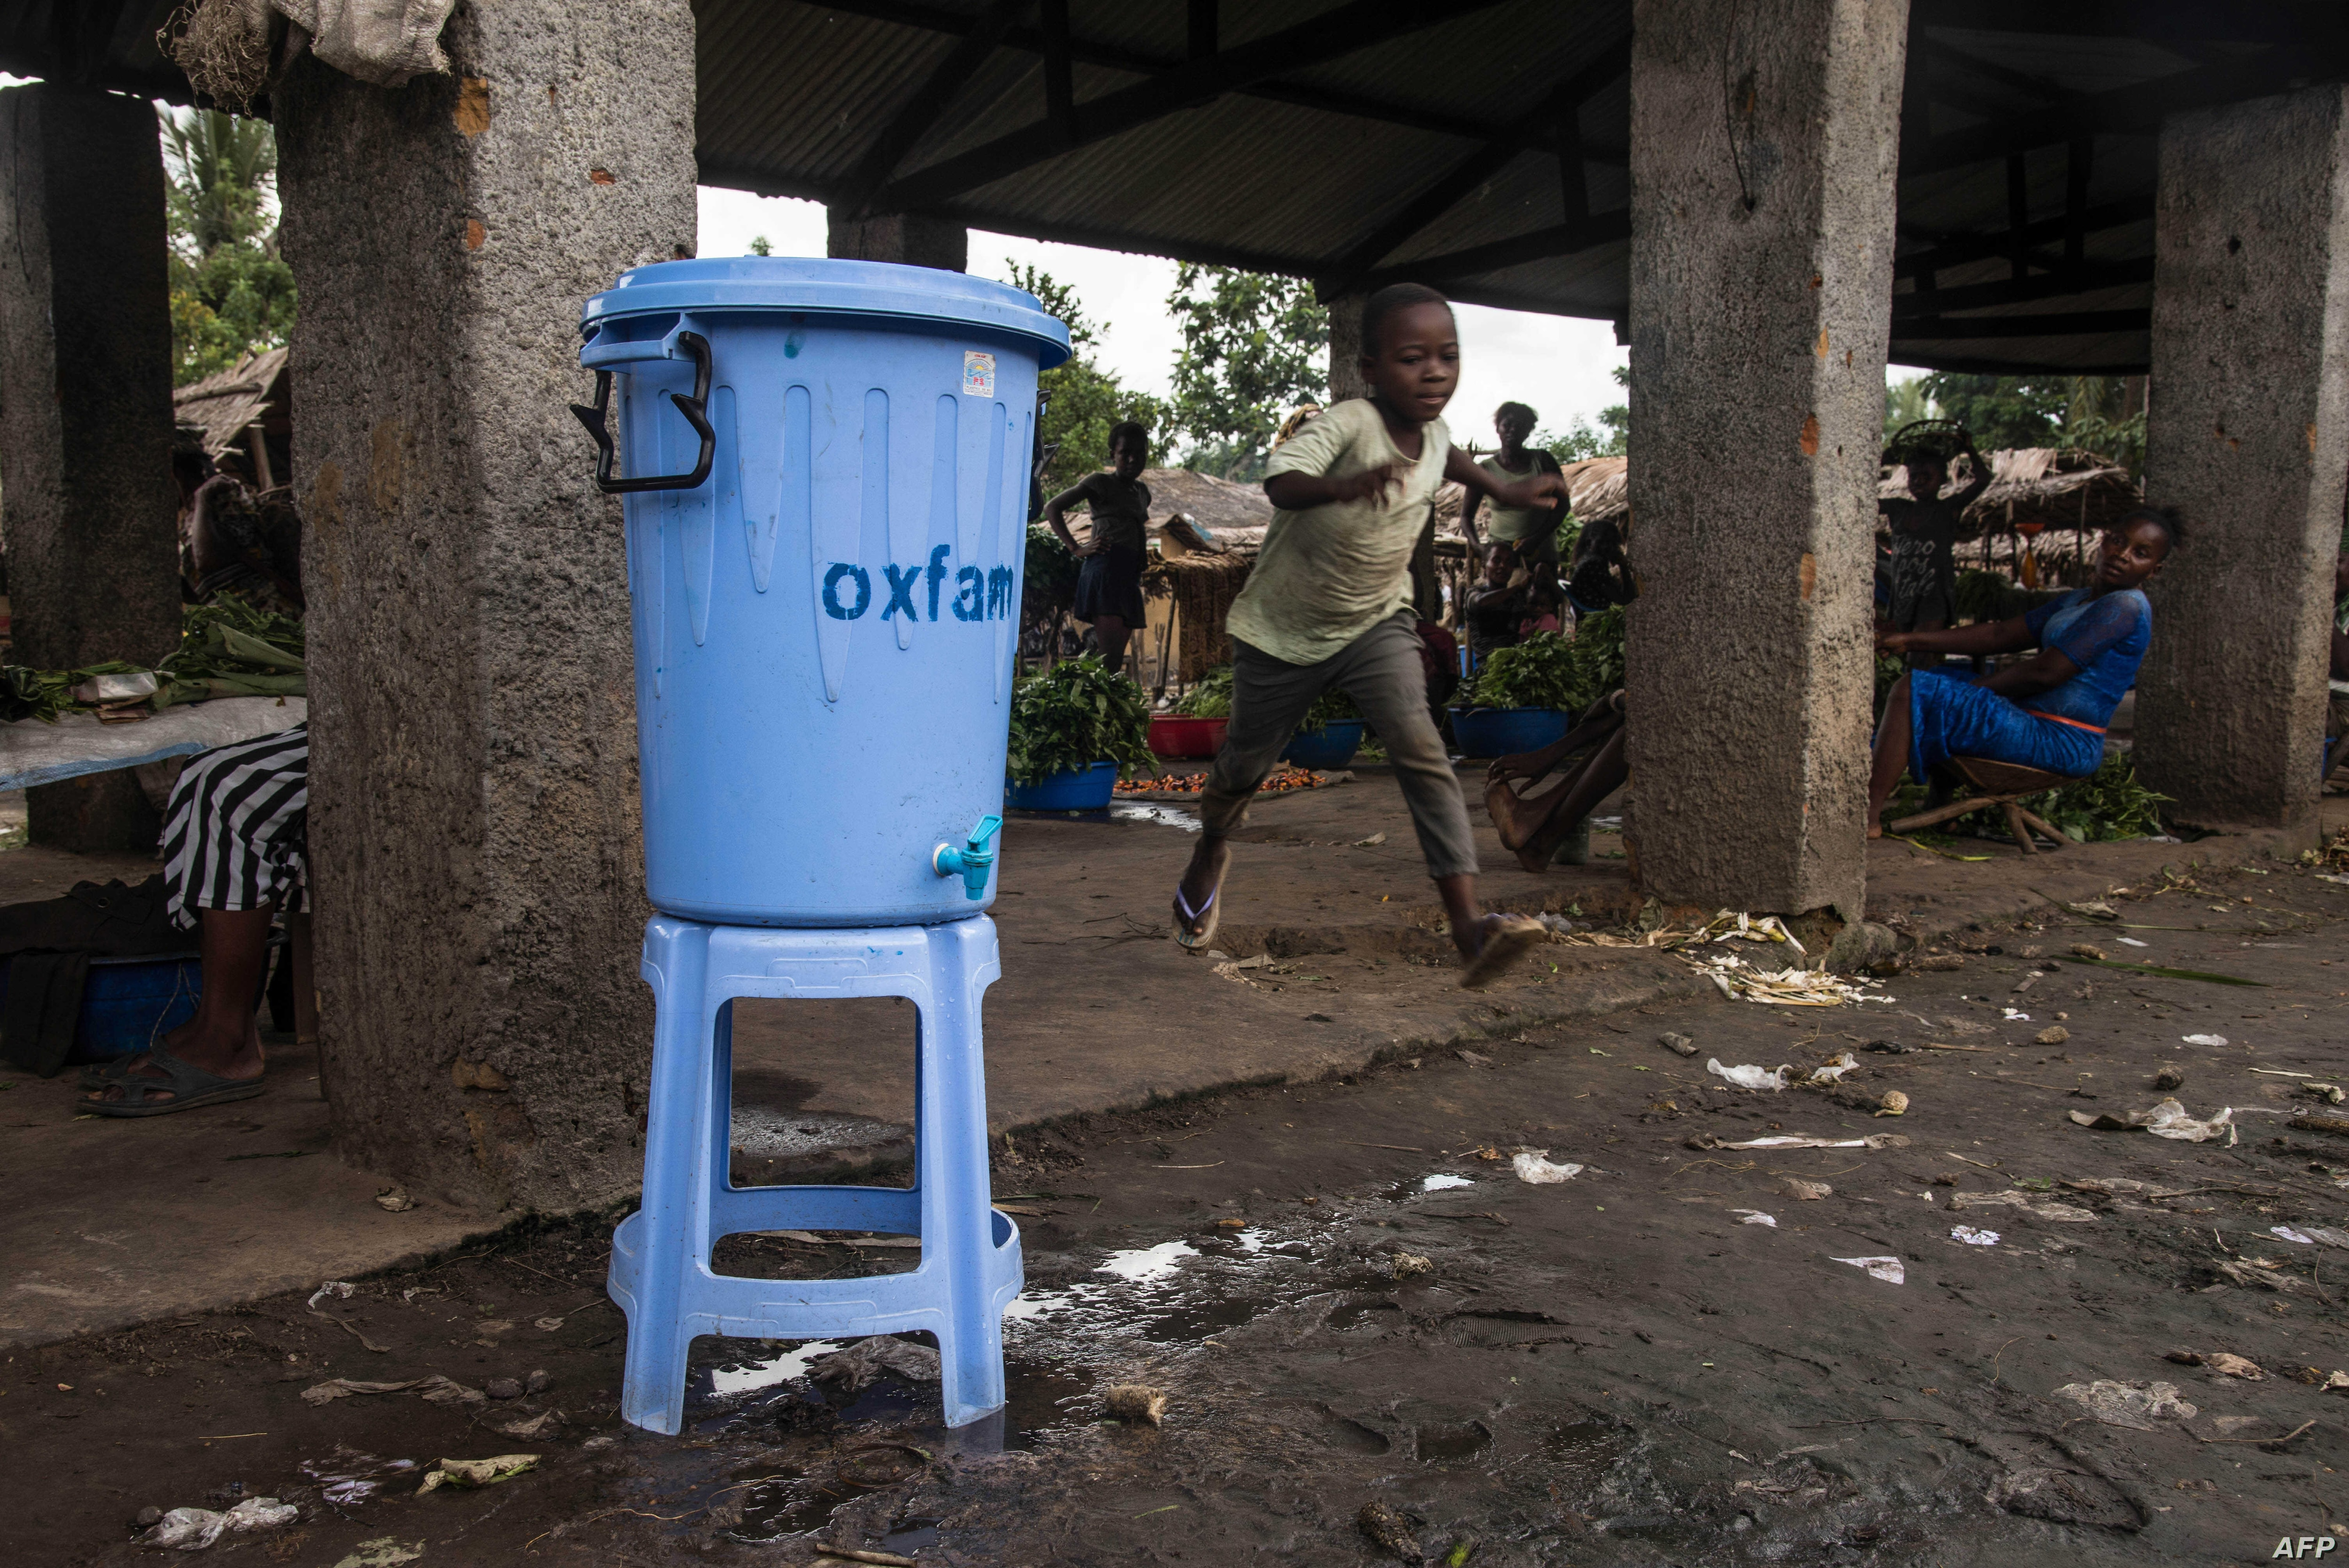 FILE - A boy runs past a dispenser containing water mixed with disinfectant, east of Mbandaka, DRC, May 23, 2018.